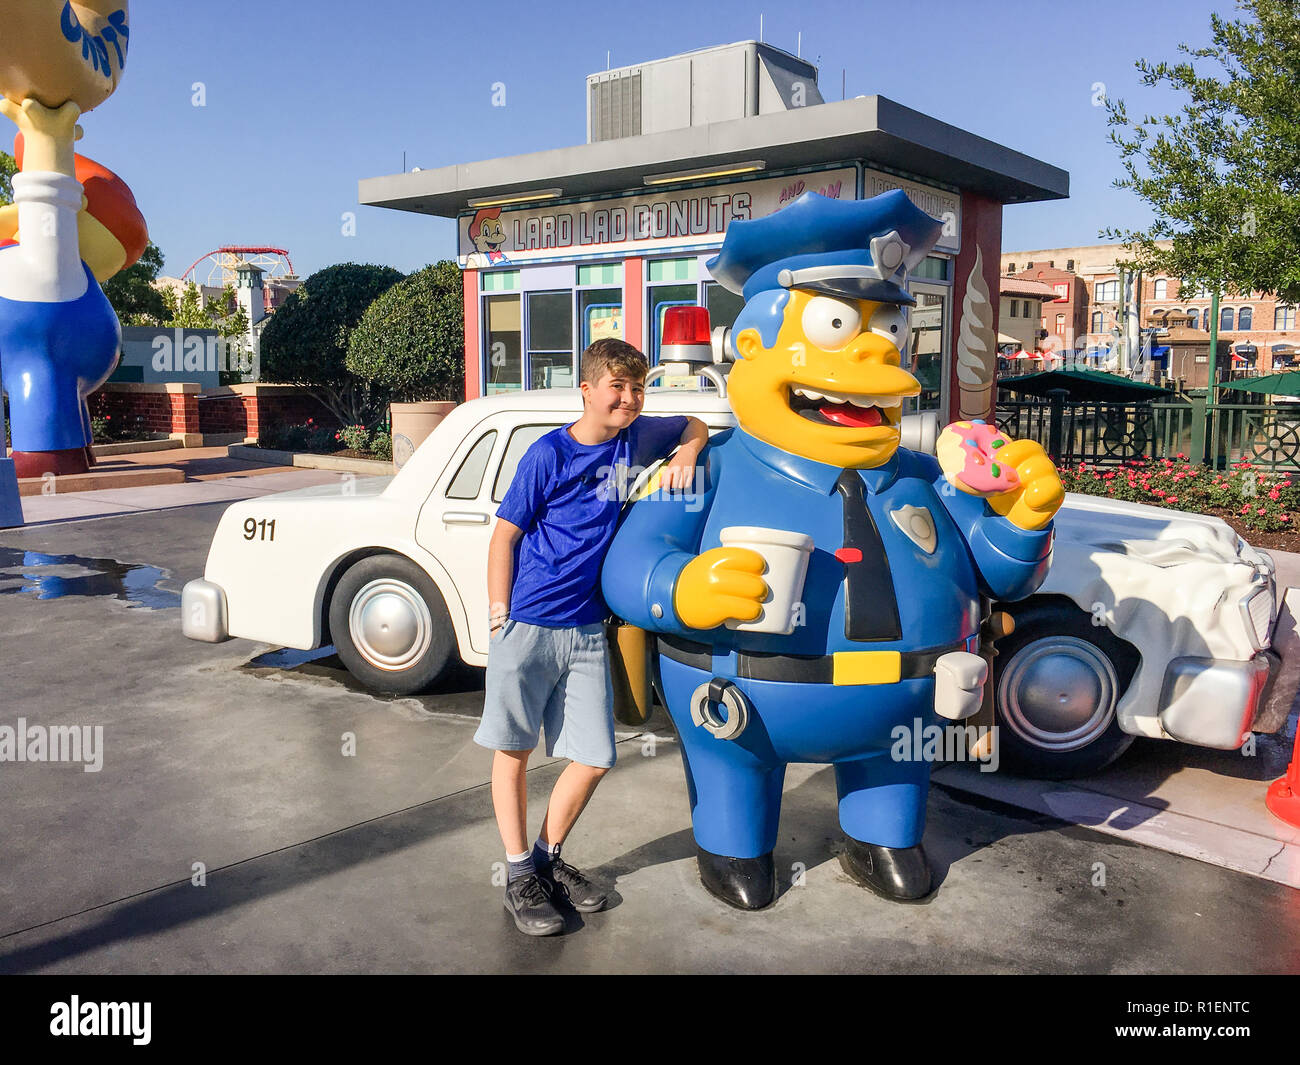 APRIL 25, 2018 - ORLANDO, FLORDIA: TWELVE YEAR OLD BOY WITH CHIEF WIGGAM FROM THE SIMPSONS AT UNIVERSAL STUDIOS. - Stock Image